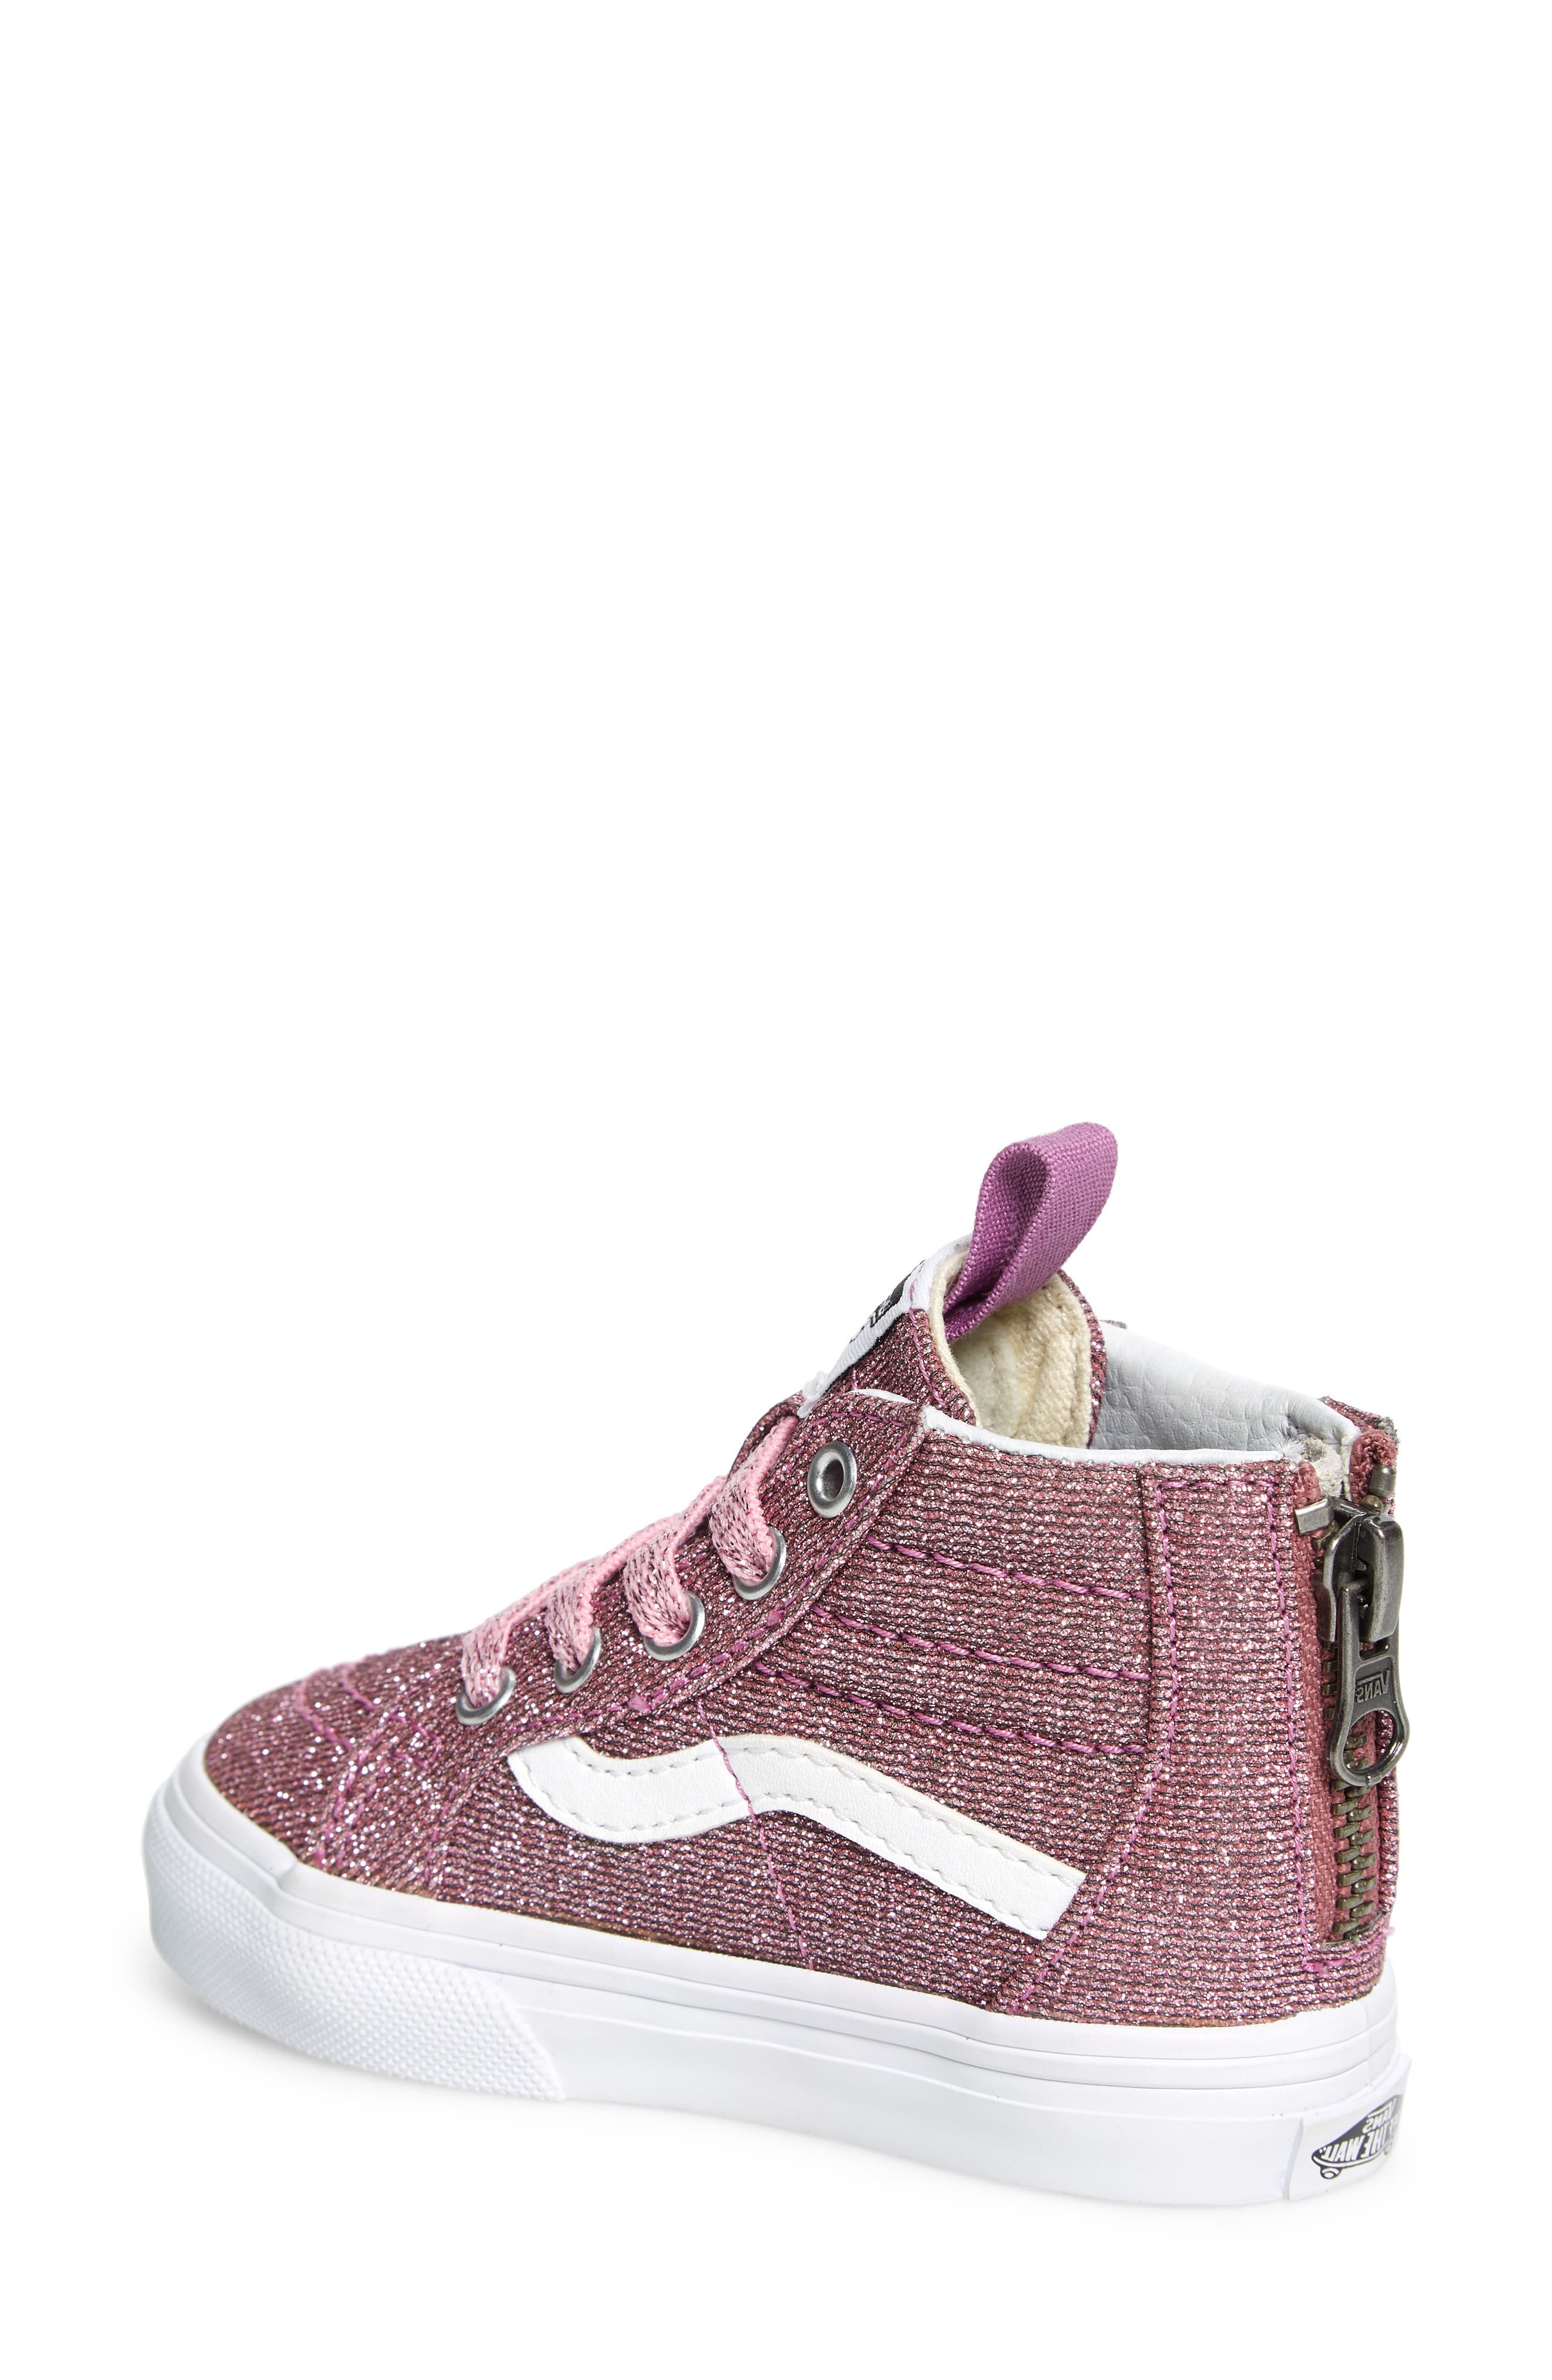 Sk8-Hi Zip Sneaker,                             Alternate thumbnail 2, color,                             LUREX GLITTER PINK/ TRUE WHITE